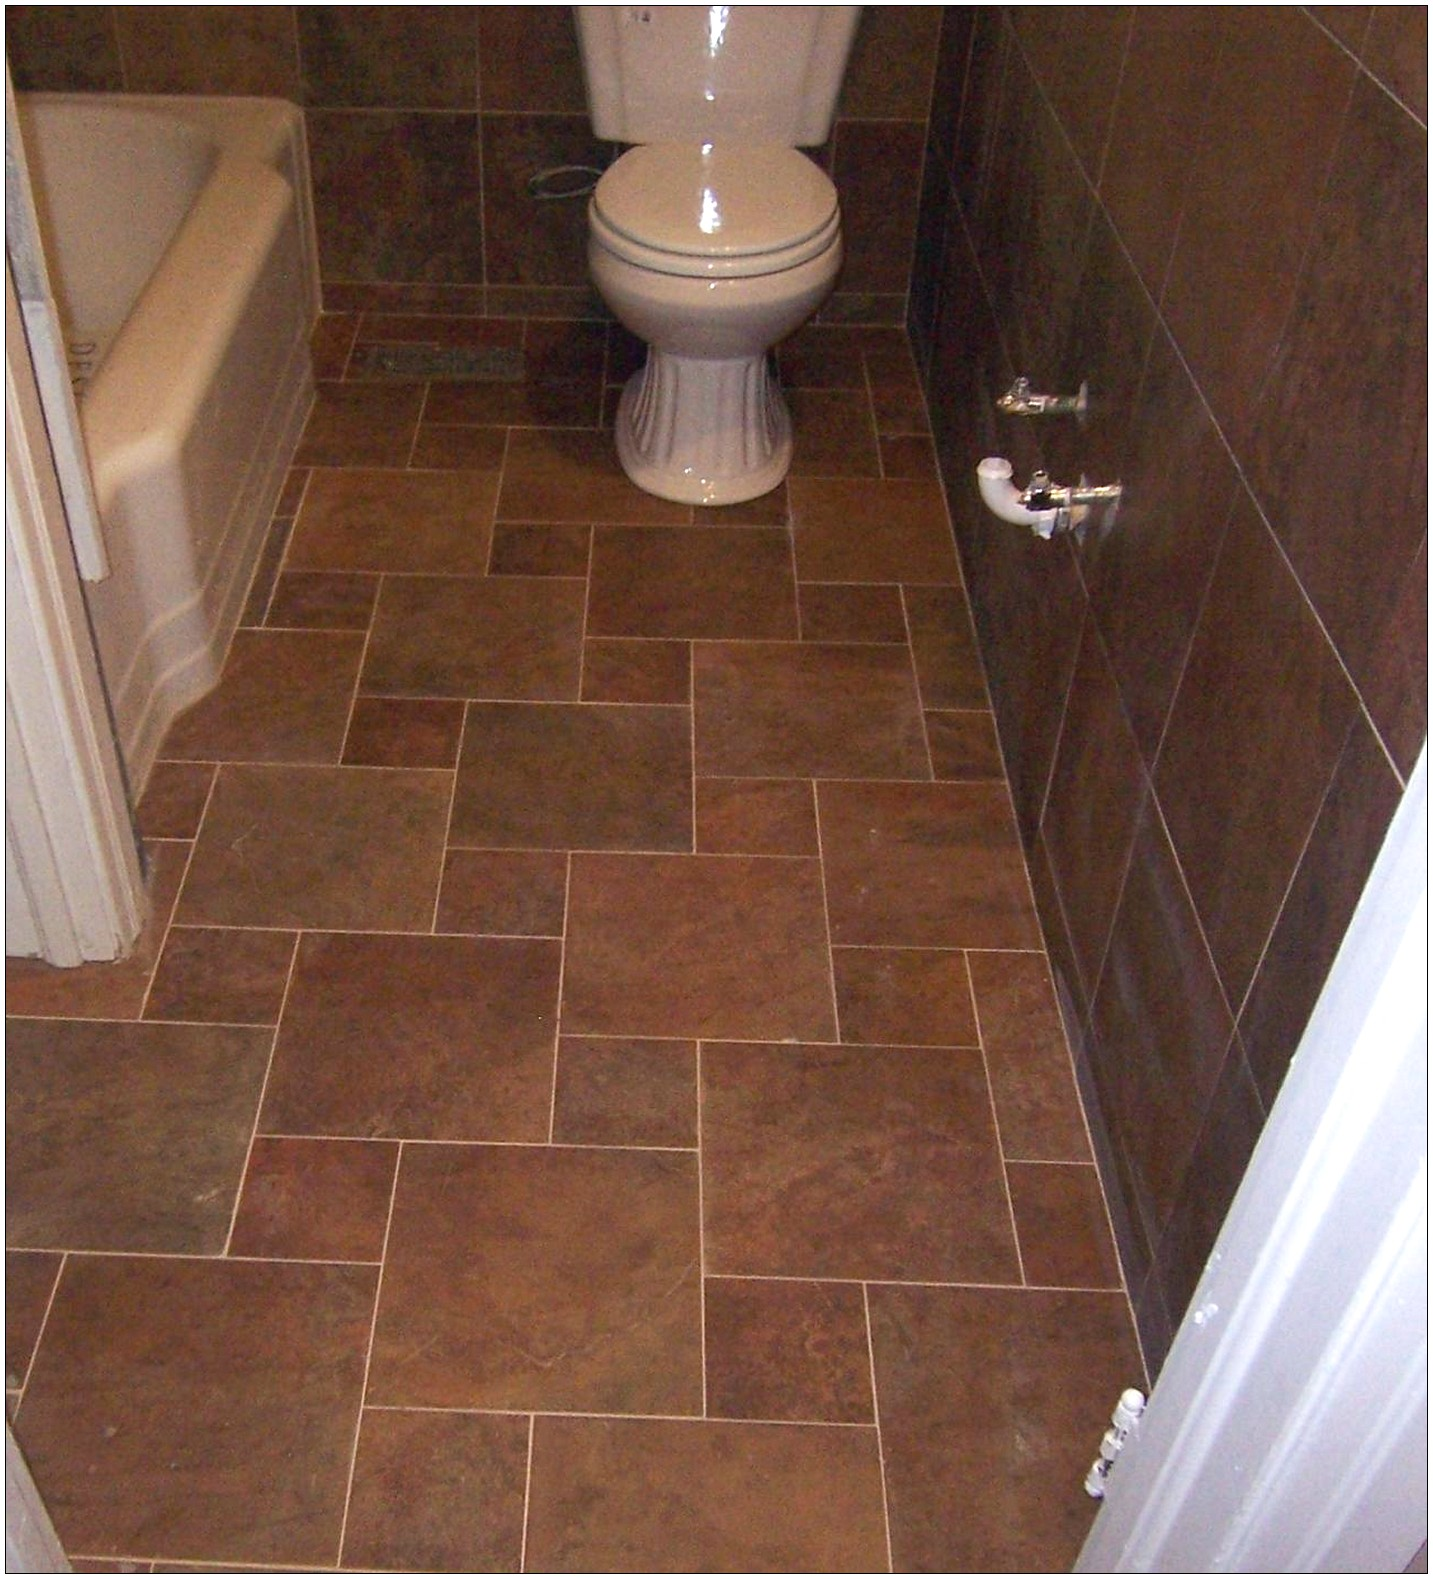 25 wonderful ideas and pictures of decorative bathroom Images of bathroom tile floors